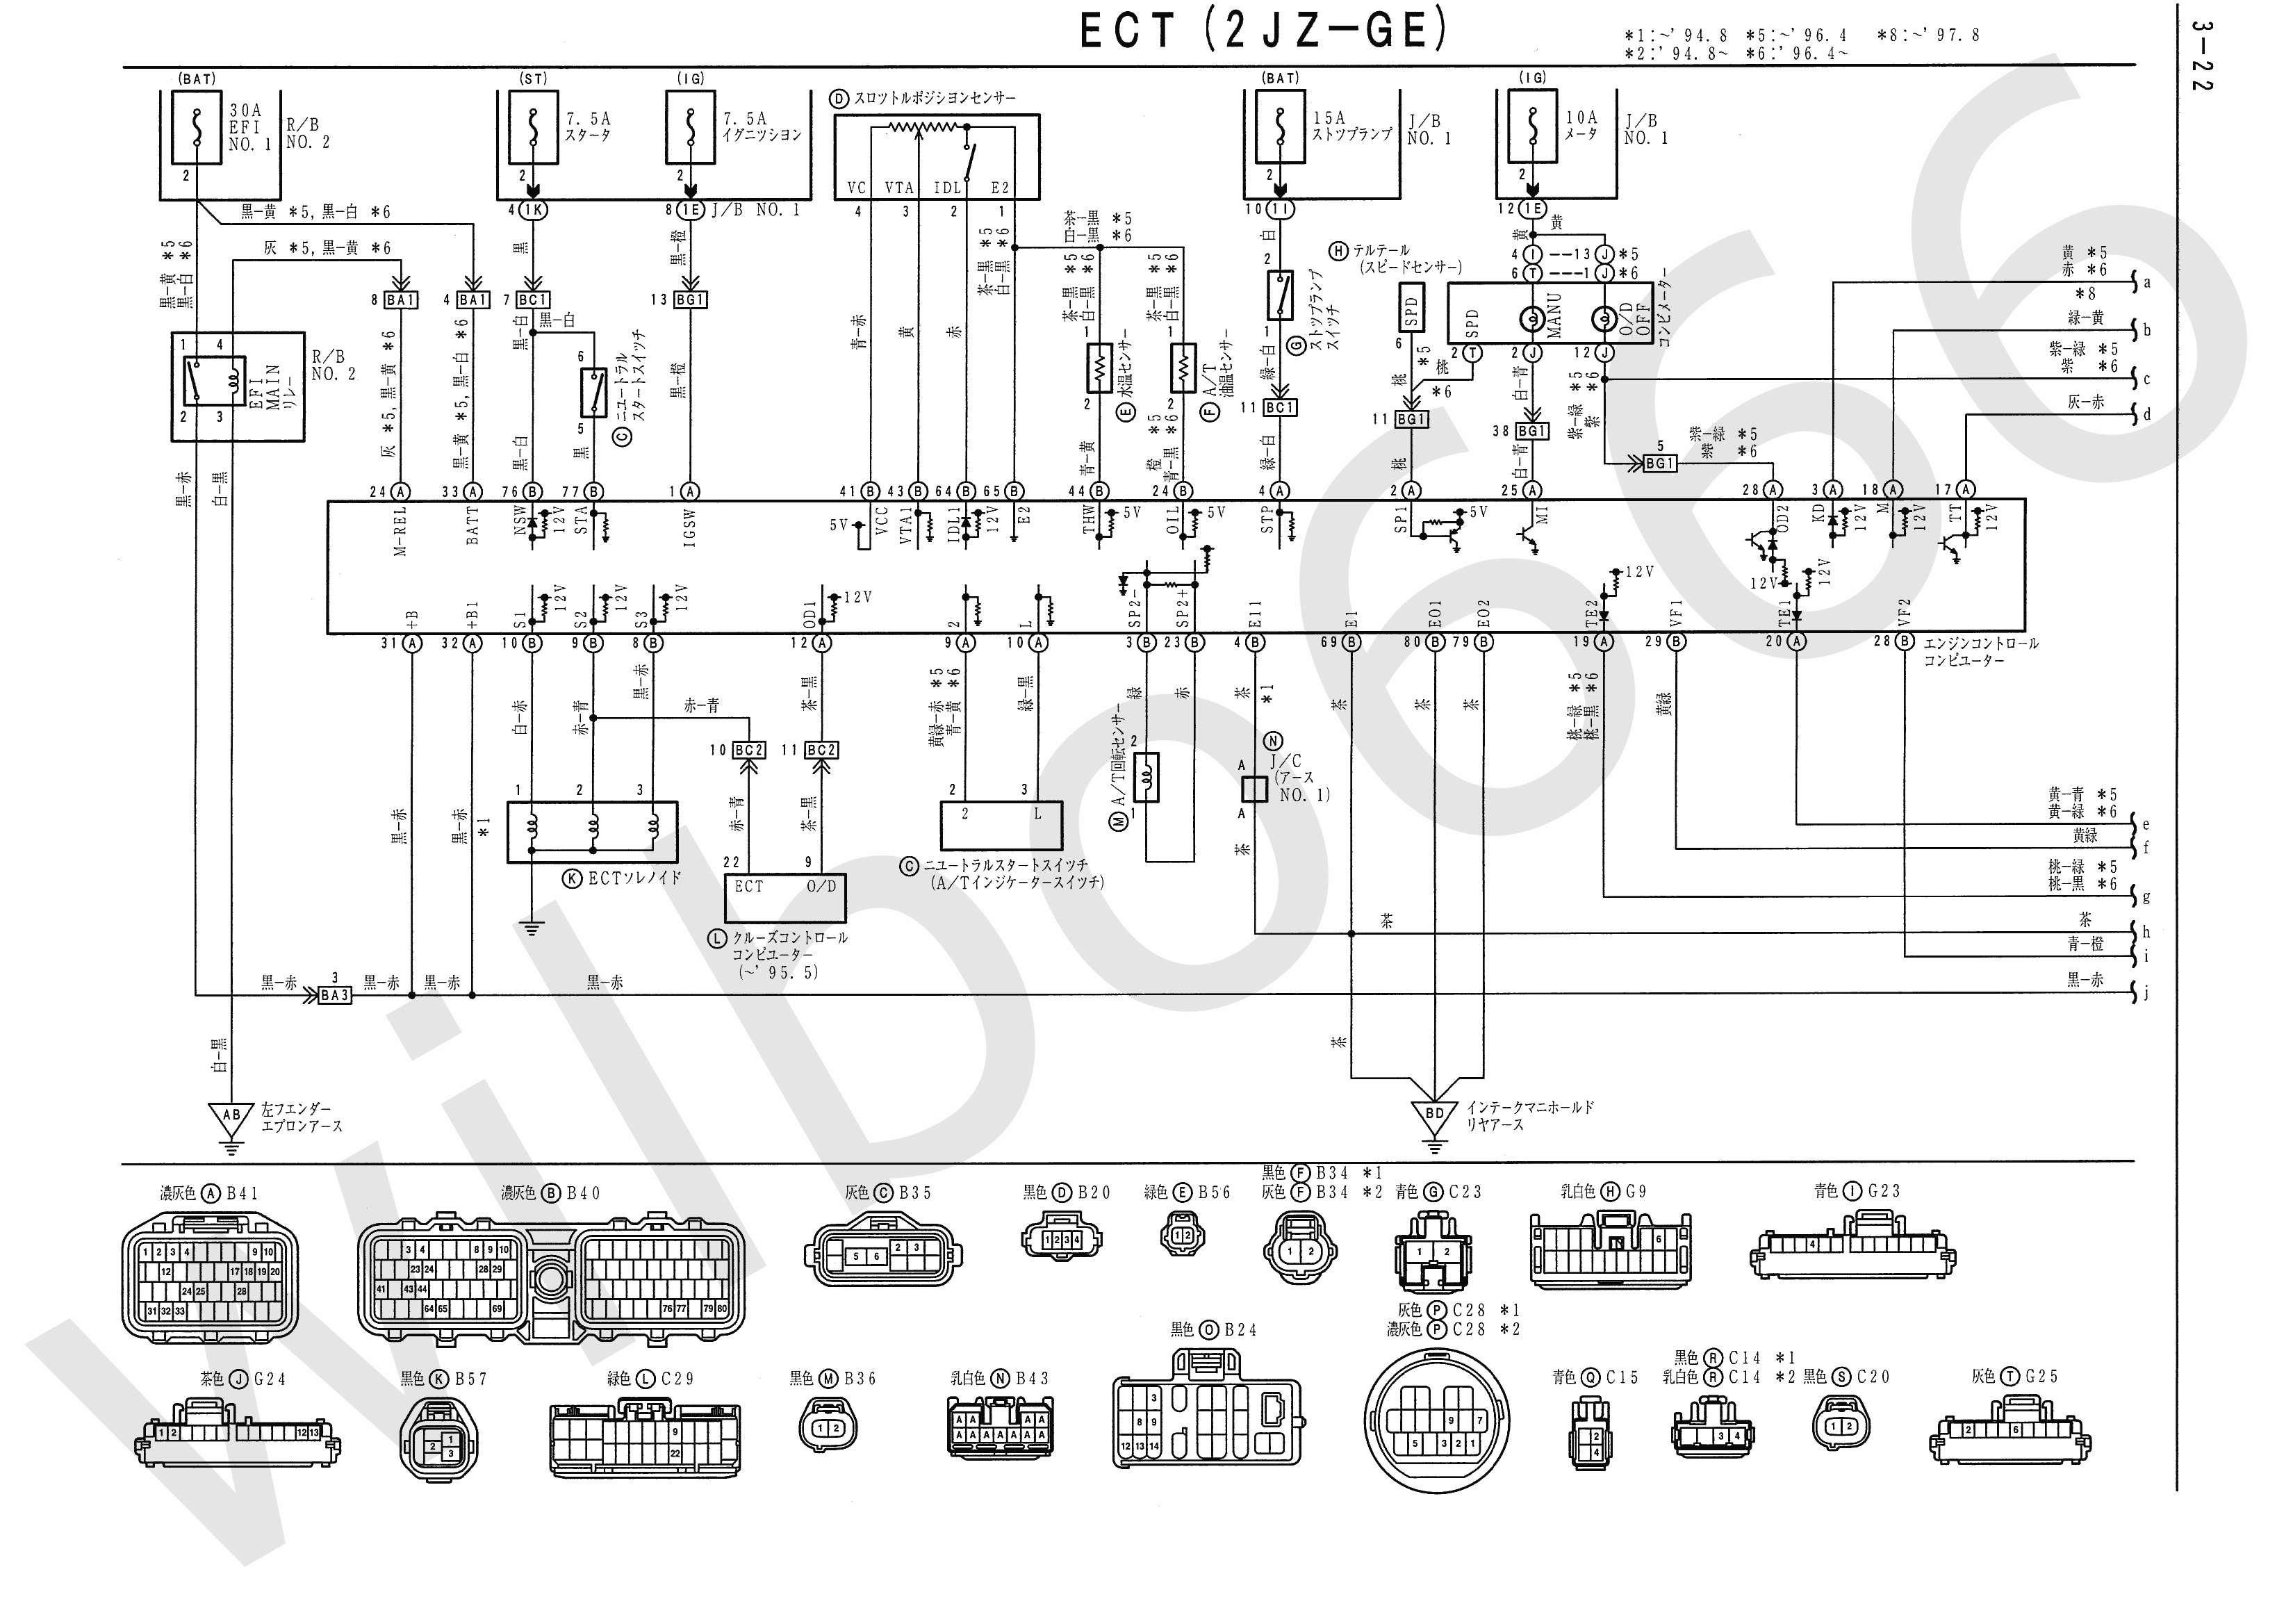 JZA80 Electrical Wiring Diagram 6742505 3 22?resize\\\\\\\\\\\\\\\\\\\\\\\\\\\\\\\\\\\\\\\\\\\\\\\\\\\\\\\\\\\\\\\\\\\\\\\\\\\\\\\\\\\\\\\\\\\\\\\\\\\\\\\\\\\\\\\\\\\\\\\\\\\\\\\\\\\\\\\\\\\\\\\\\\\\\\\\\\\\\\\\\\\\\\\\\\\\\\\\\\\\\\\\\\\\\\\\\\\\\\\\\\\\\\\\\\\\\\\\\\\\\\\\\\\\\\\\\\\\\\\\\\\\\\\\\\\\\\\\\\\\\\\\\\\\\\\\\\\\\\\\\\\\\\\\\\\\\\\\\\\\\\\\\\\\\\\\\\\\\\\\\\\\\\\\\\\\\\\\\\\\\\\\\\\\\\\\\\\\\\\\\\\\\\\\\\\\\\\\\\\\\\\\\\\\\\\\\\\\\\\\\\\\\\\\\\\\\\\\\\\\\\\\\\\\\\\\\\\\\\\\\\\\\\\=665%2C471 wiring diagram shorted ct gandul 45 77 79 119 edwards 592 transformer wiring diagram at love-stories.co